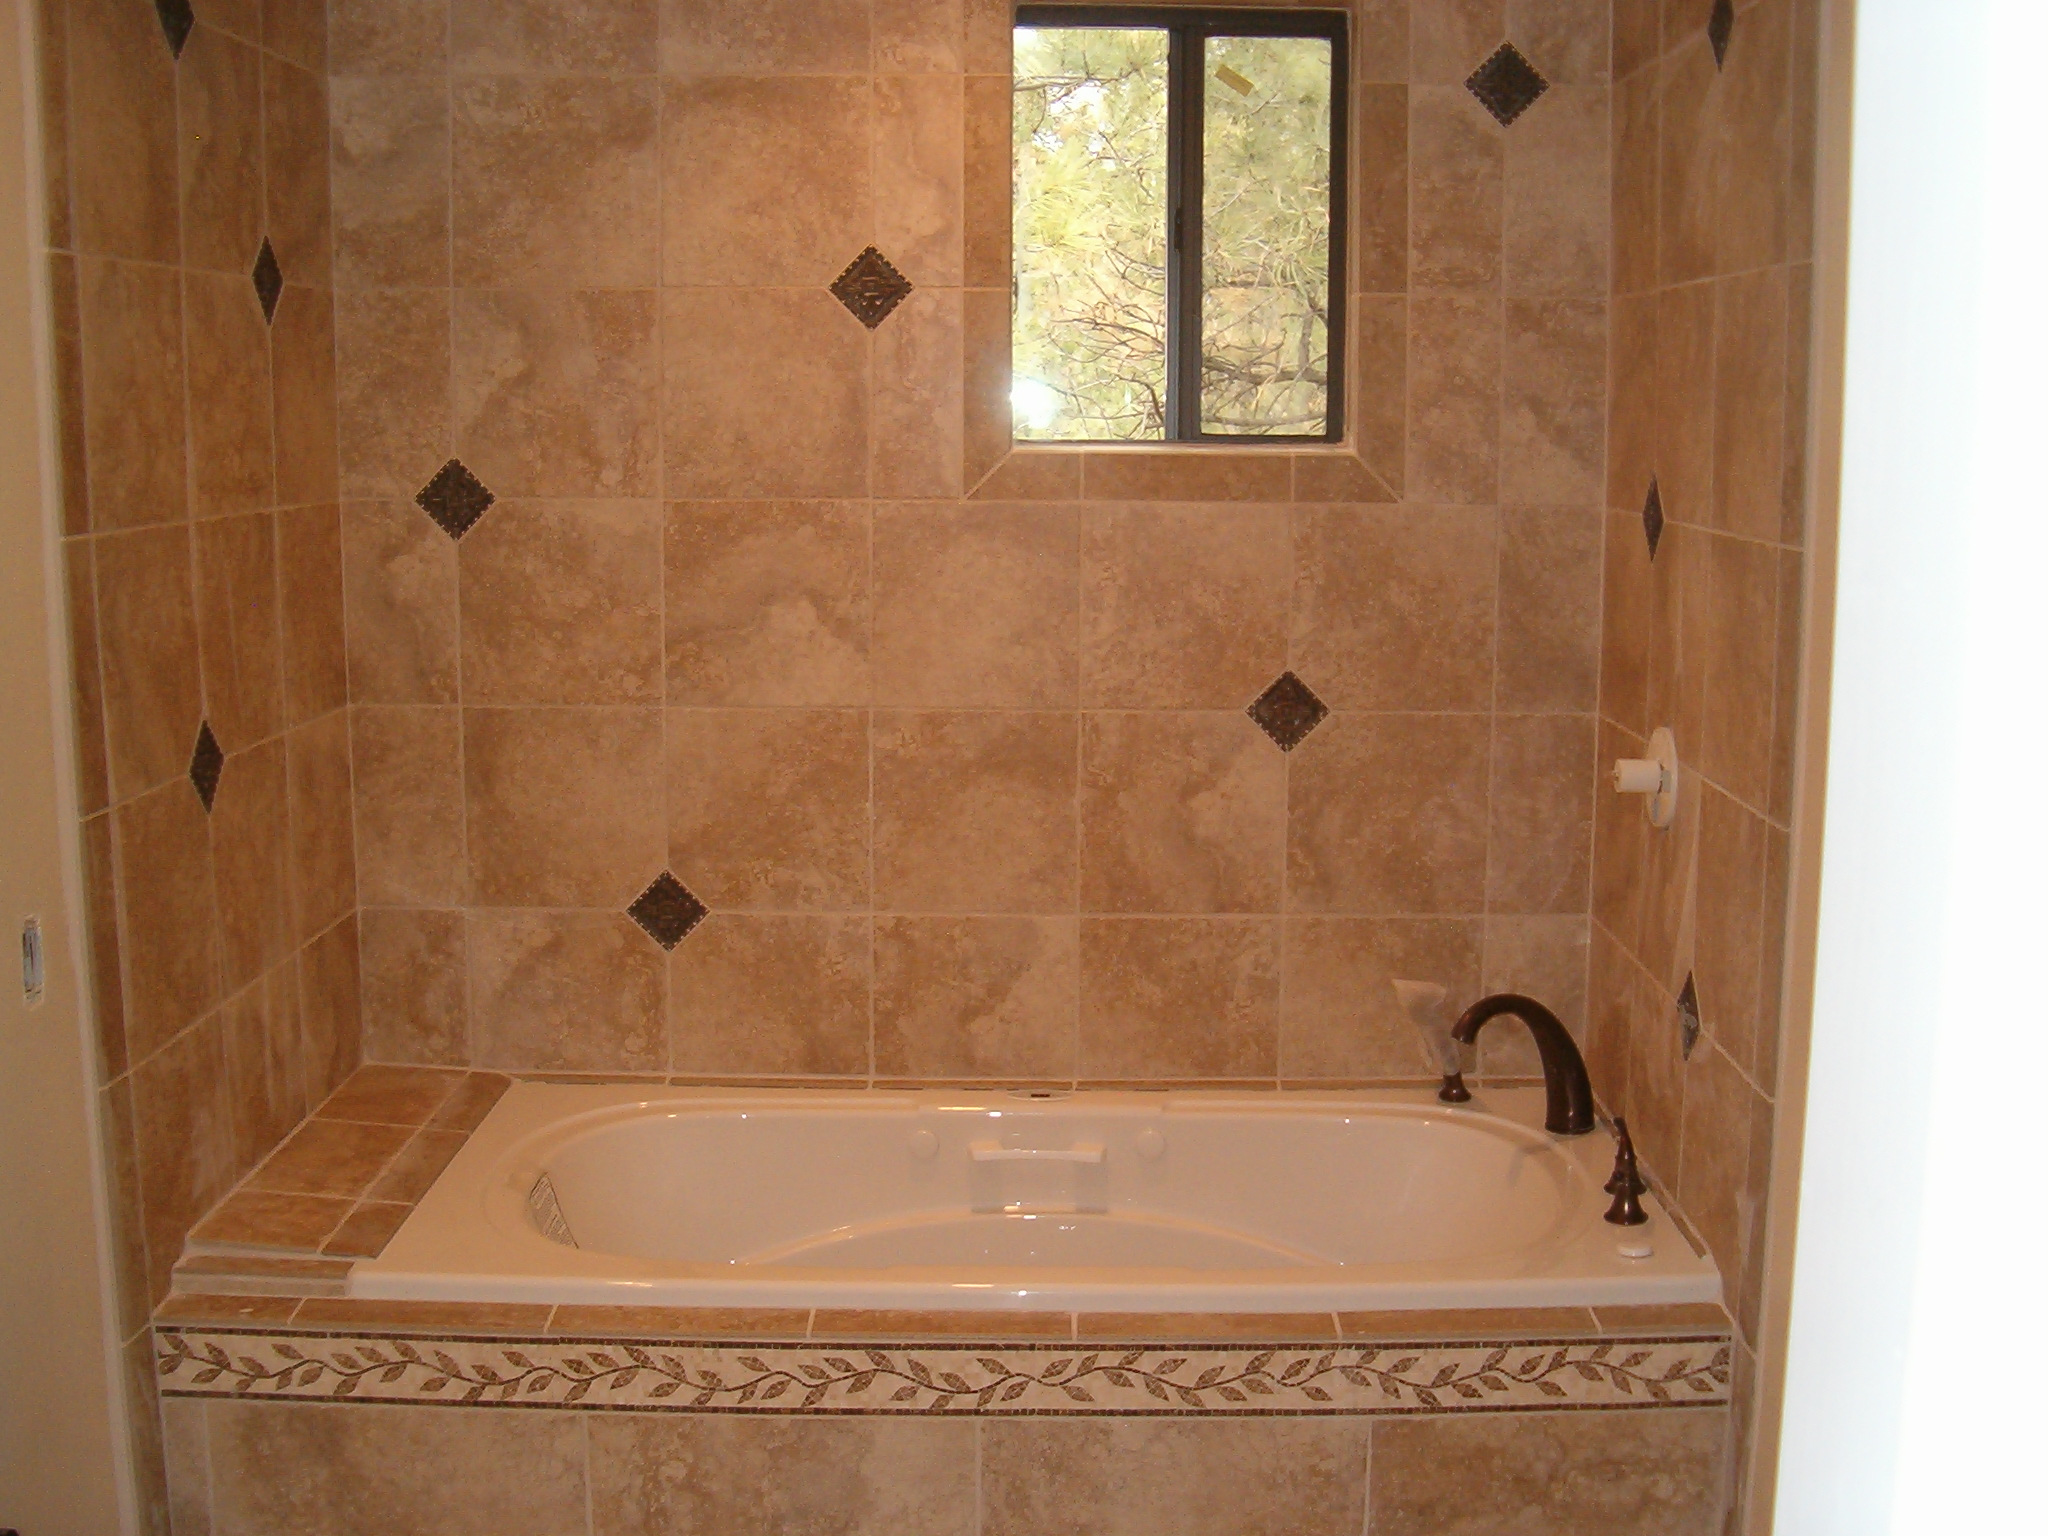 Remodeling Bathroom Tile Ideas 30 pictures of bathroom tile ideas on a budget